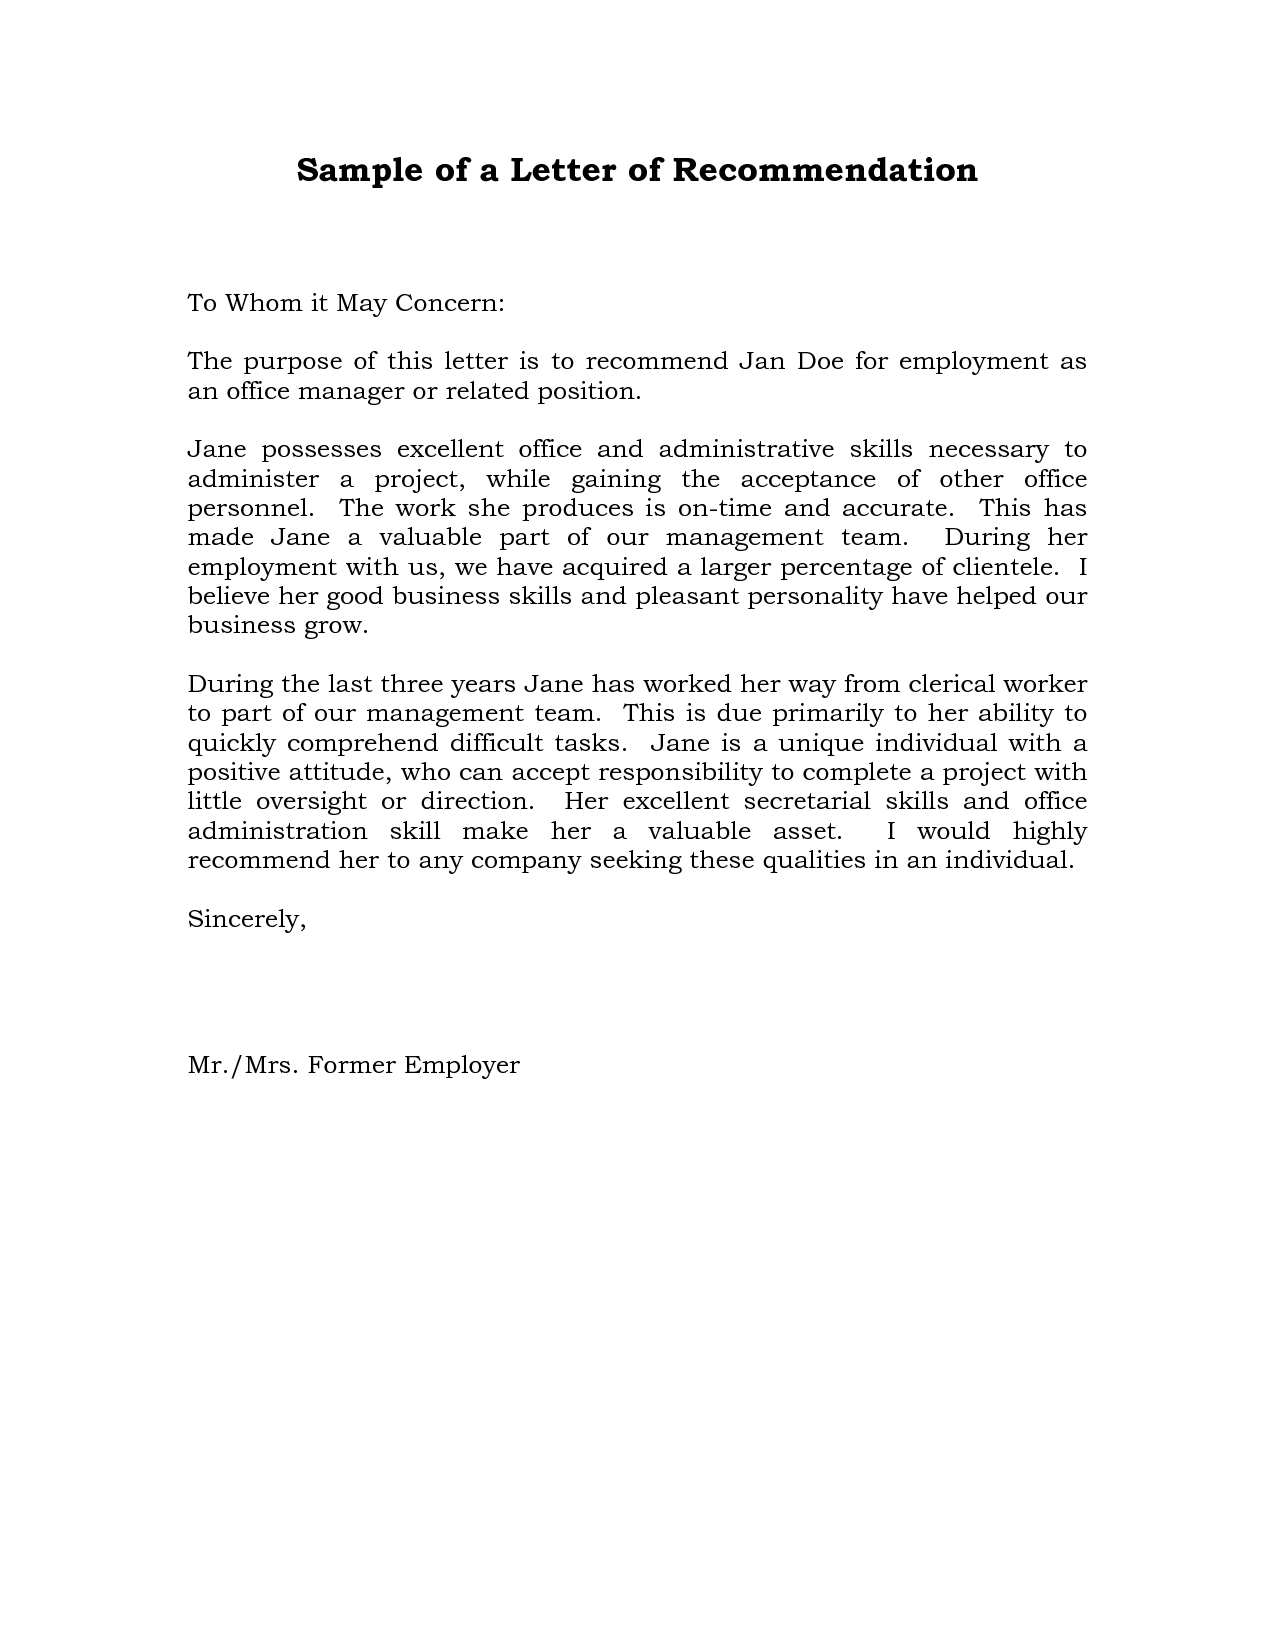 Reference Letter of Recommendation Sample – Free Sample Letter of Recommendation